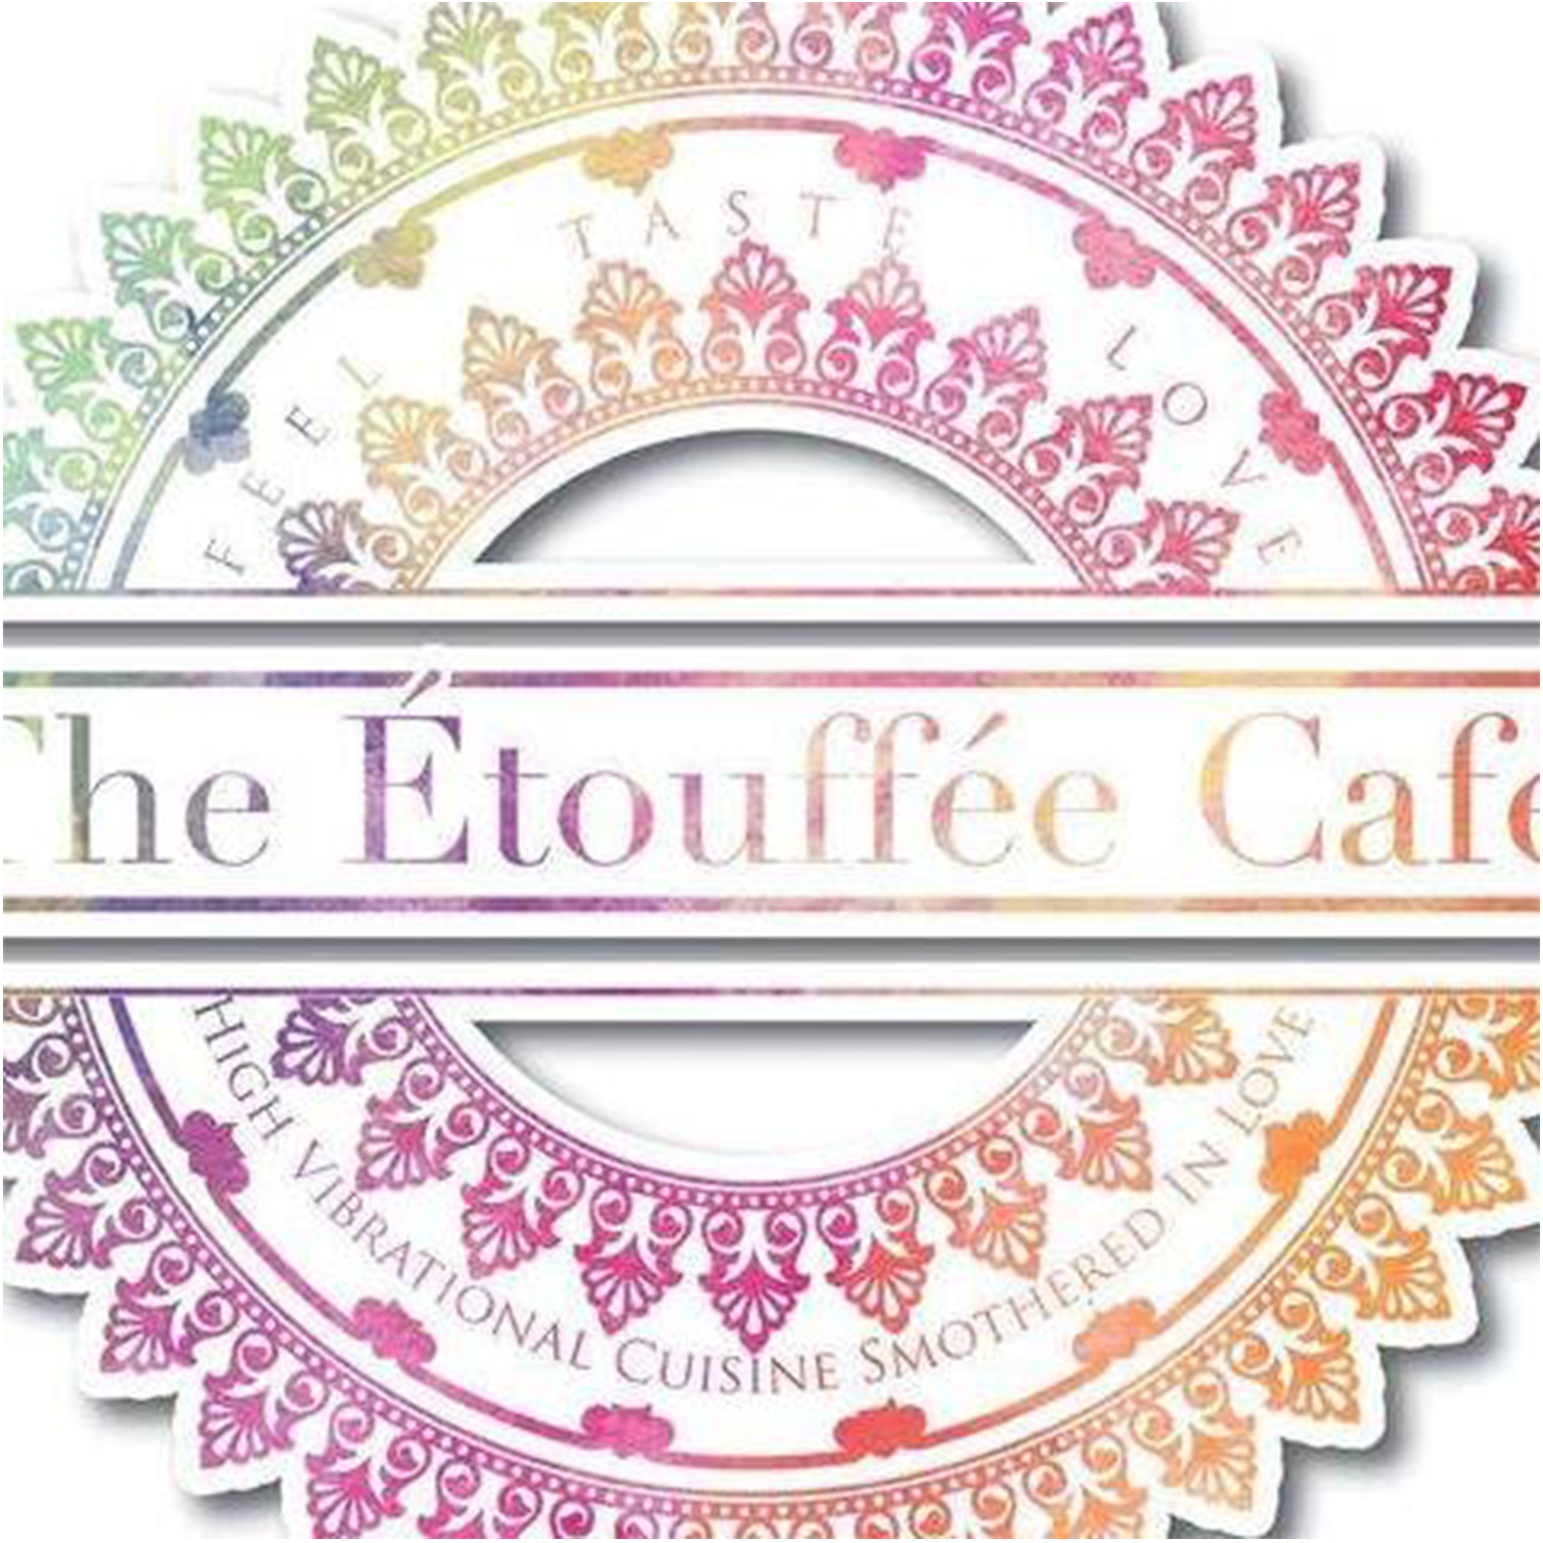 The Etouffee Café